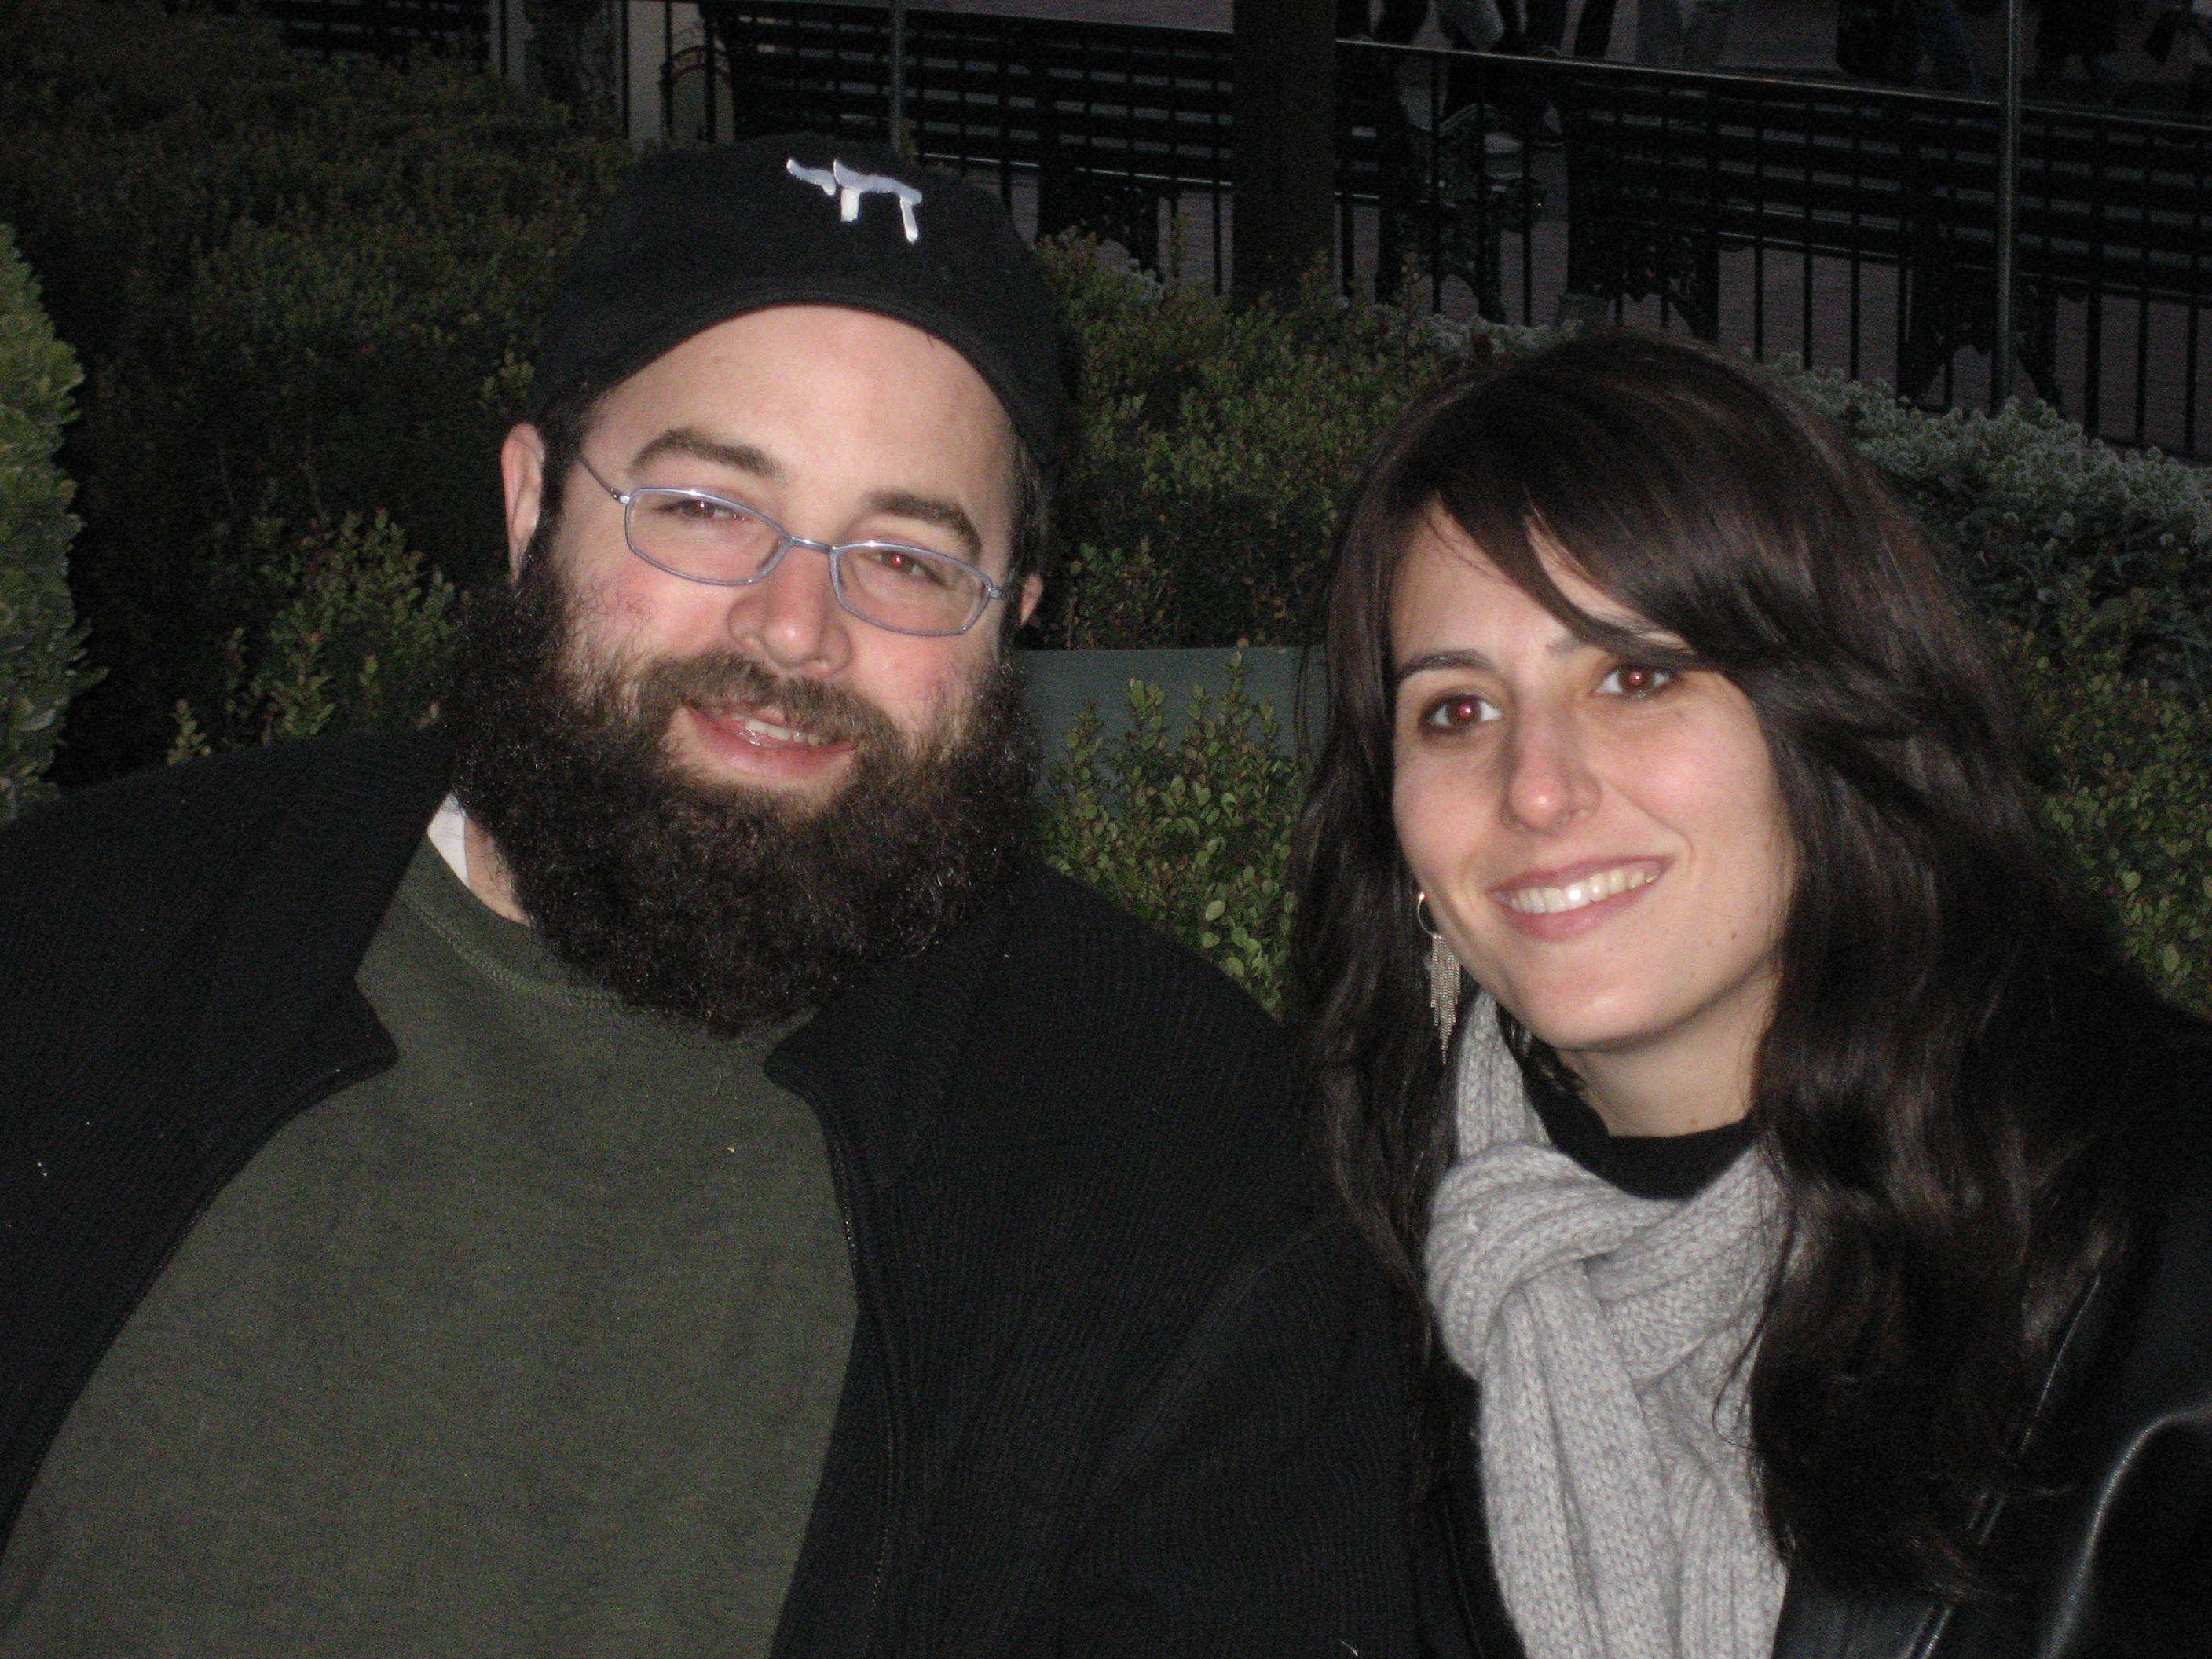 brookline jewish single women This speed dating event is for jewish singles at this event, men and women will  meet each other, and each date will be 5 minutes you will get your match.